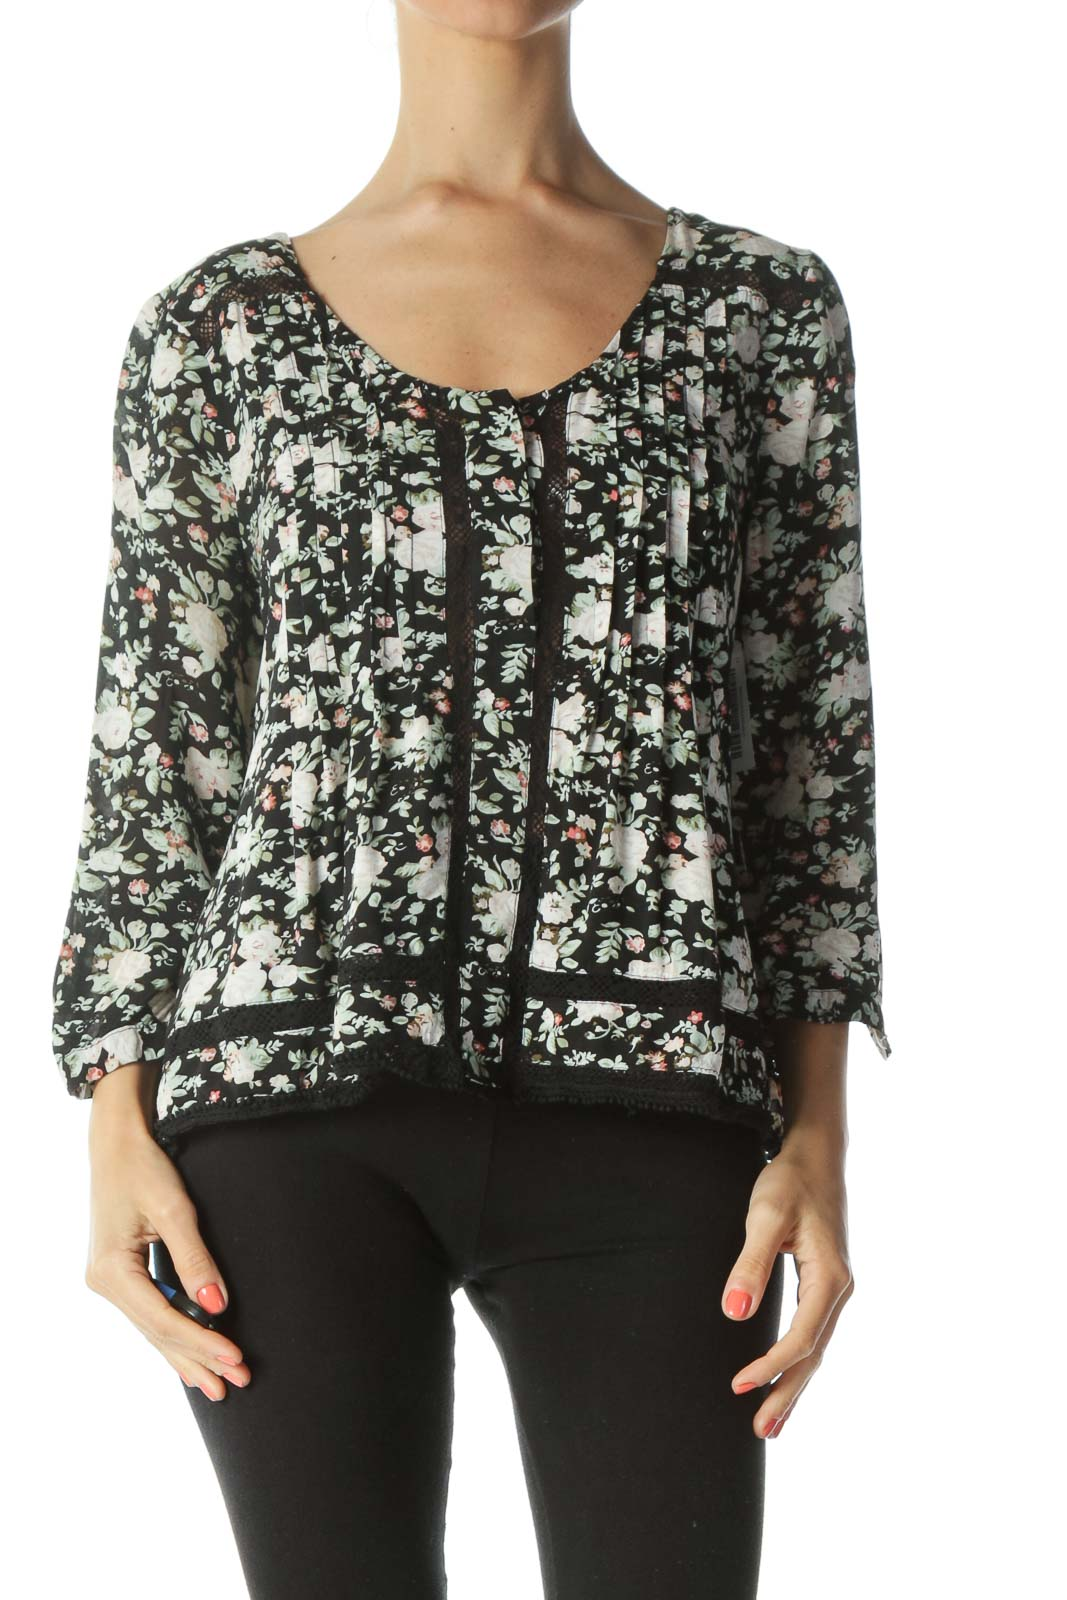 Black/Green/Pink Floral-Print See-Through-Knit Flared Blouse